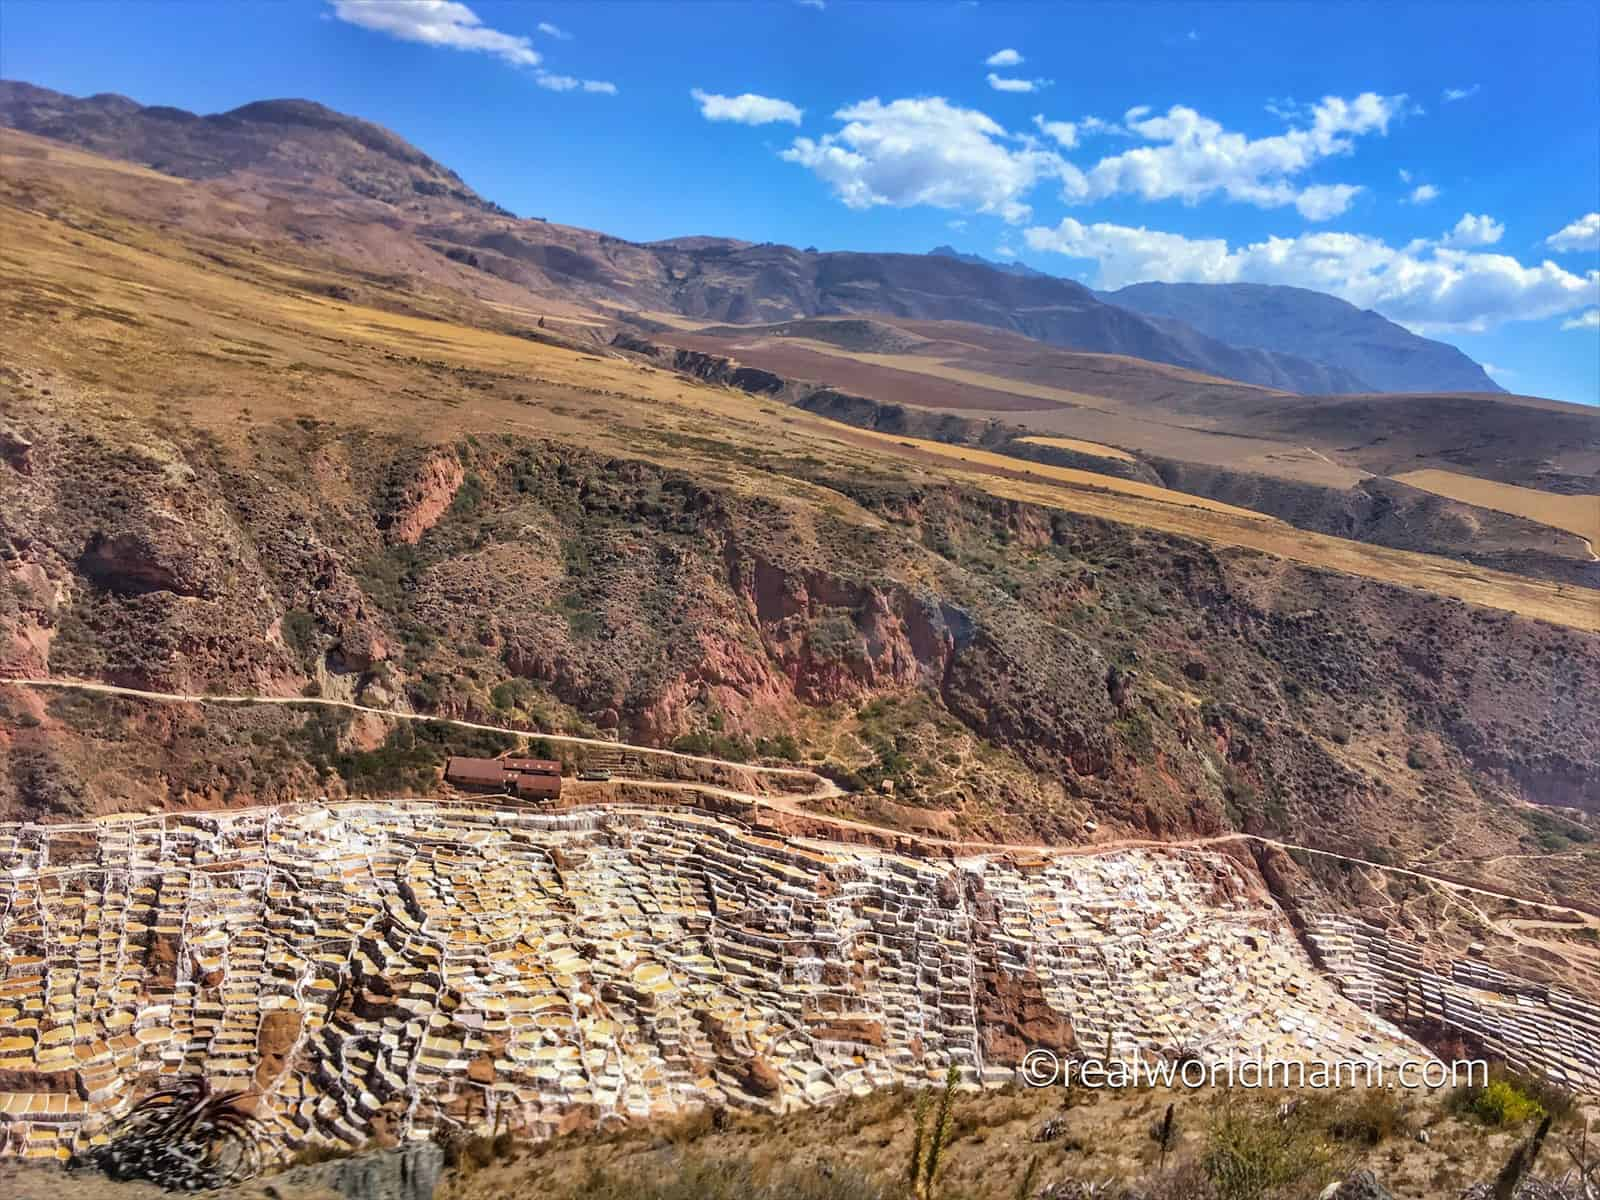 Going down the road in Sacred Valley